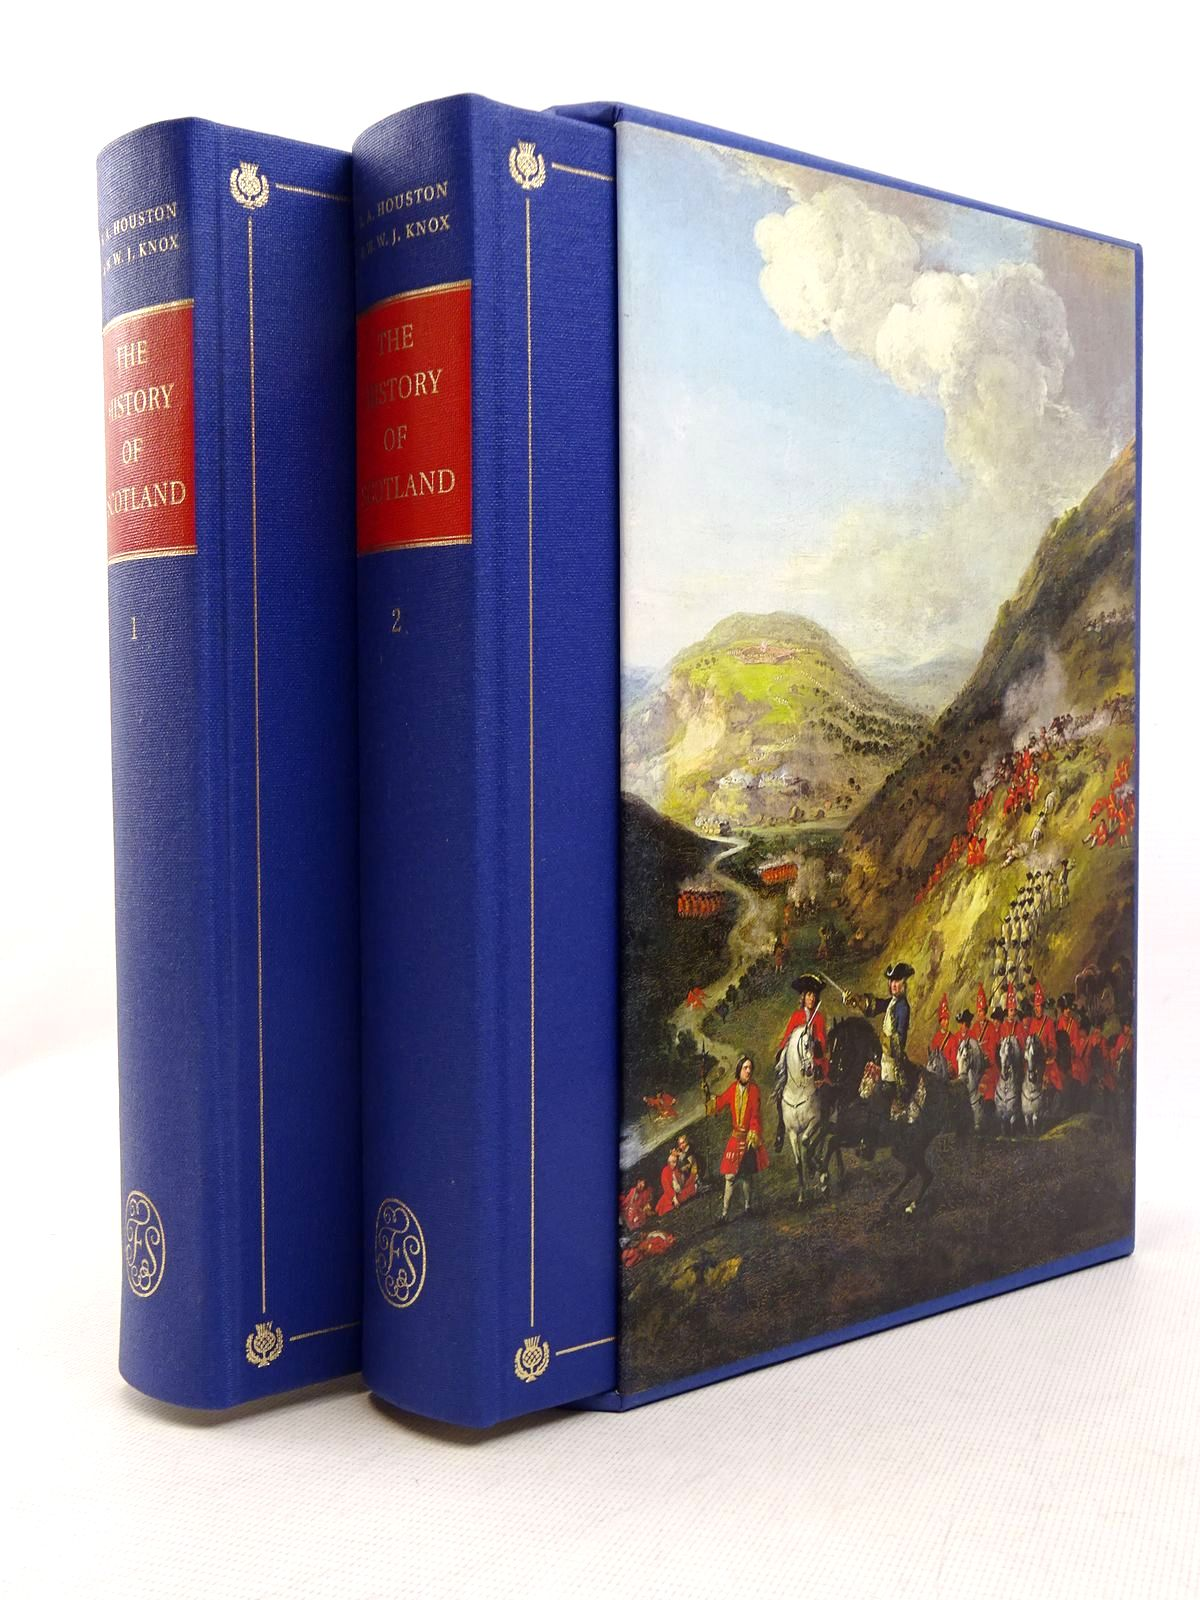 Photo of THE HISTORY OF SCOTLAND FROM THE EARLIEST TIMES TO THE PRESENT DAY (2 VOLUMES) written by Houston, R.A. Knox, W.W.J. published by Folio Society (STOCK CODE: 1817153)  for sale by Stella & Rose's Books